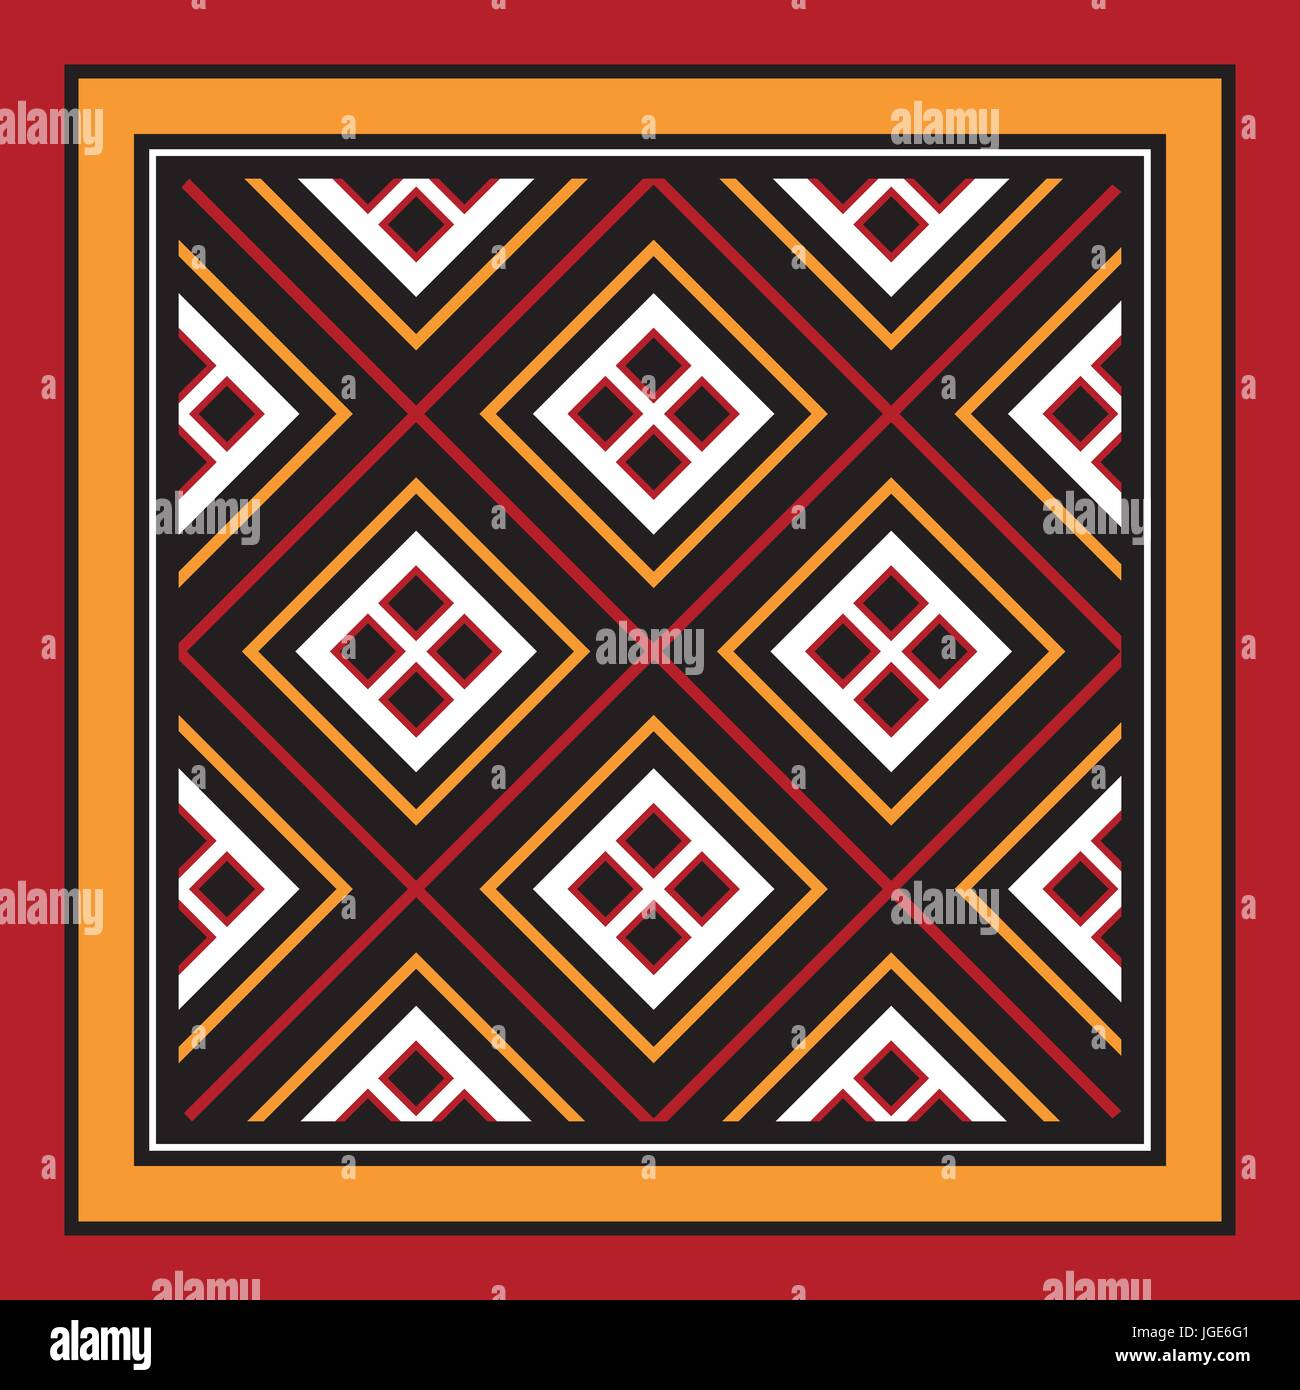 Traditional Carving Art From Indonesia - Stock Vector